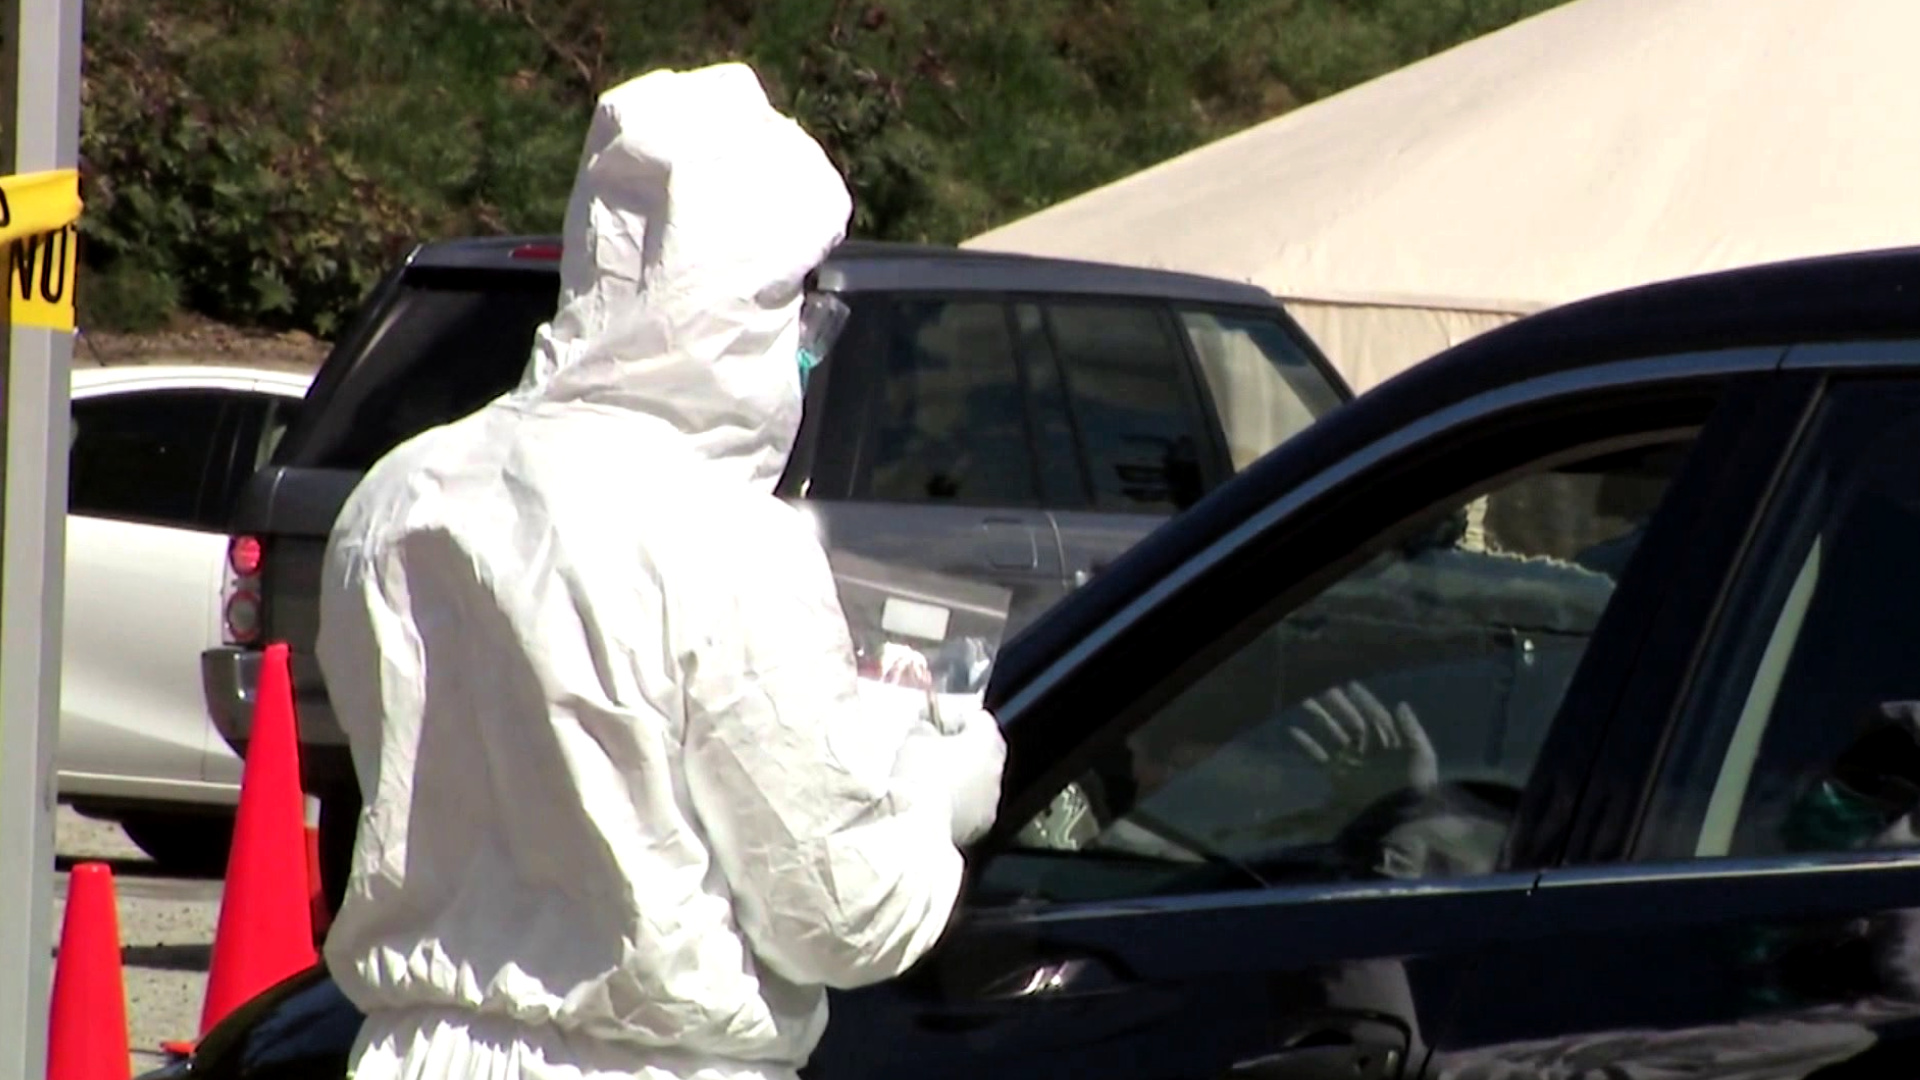 A drive-thru coronavirus testing site is seen outside Dodger Stadium on March 27, 2020. (KTLA)